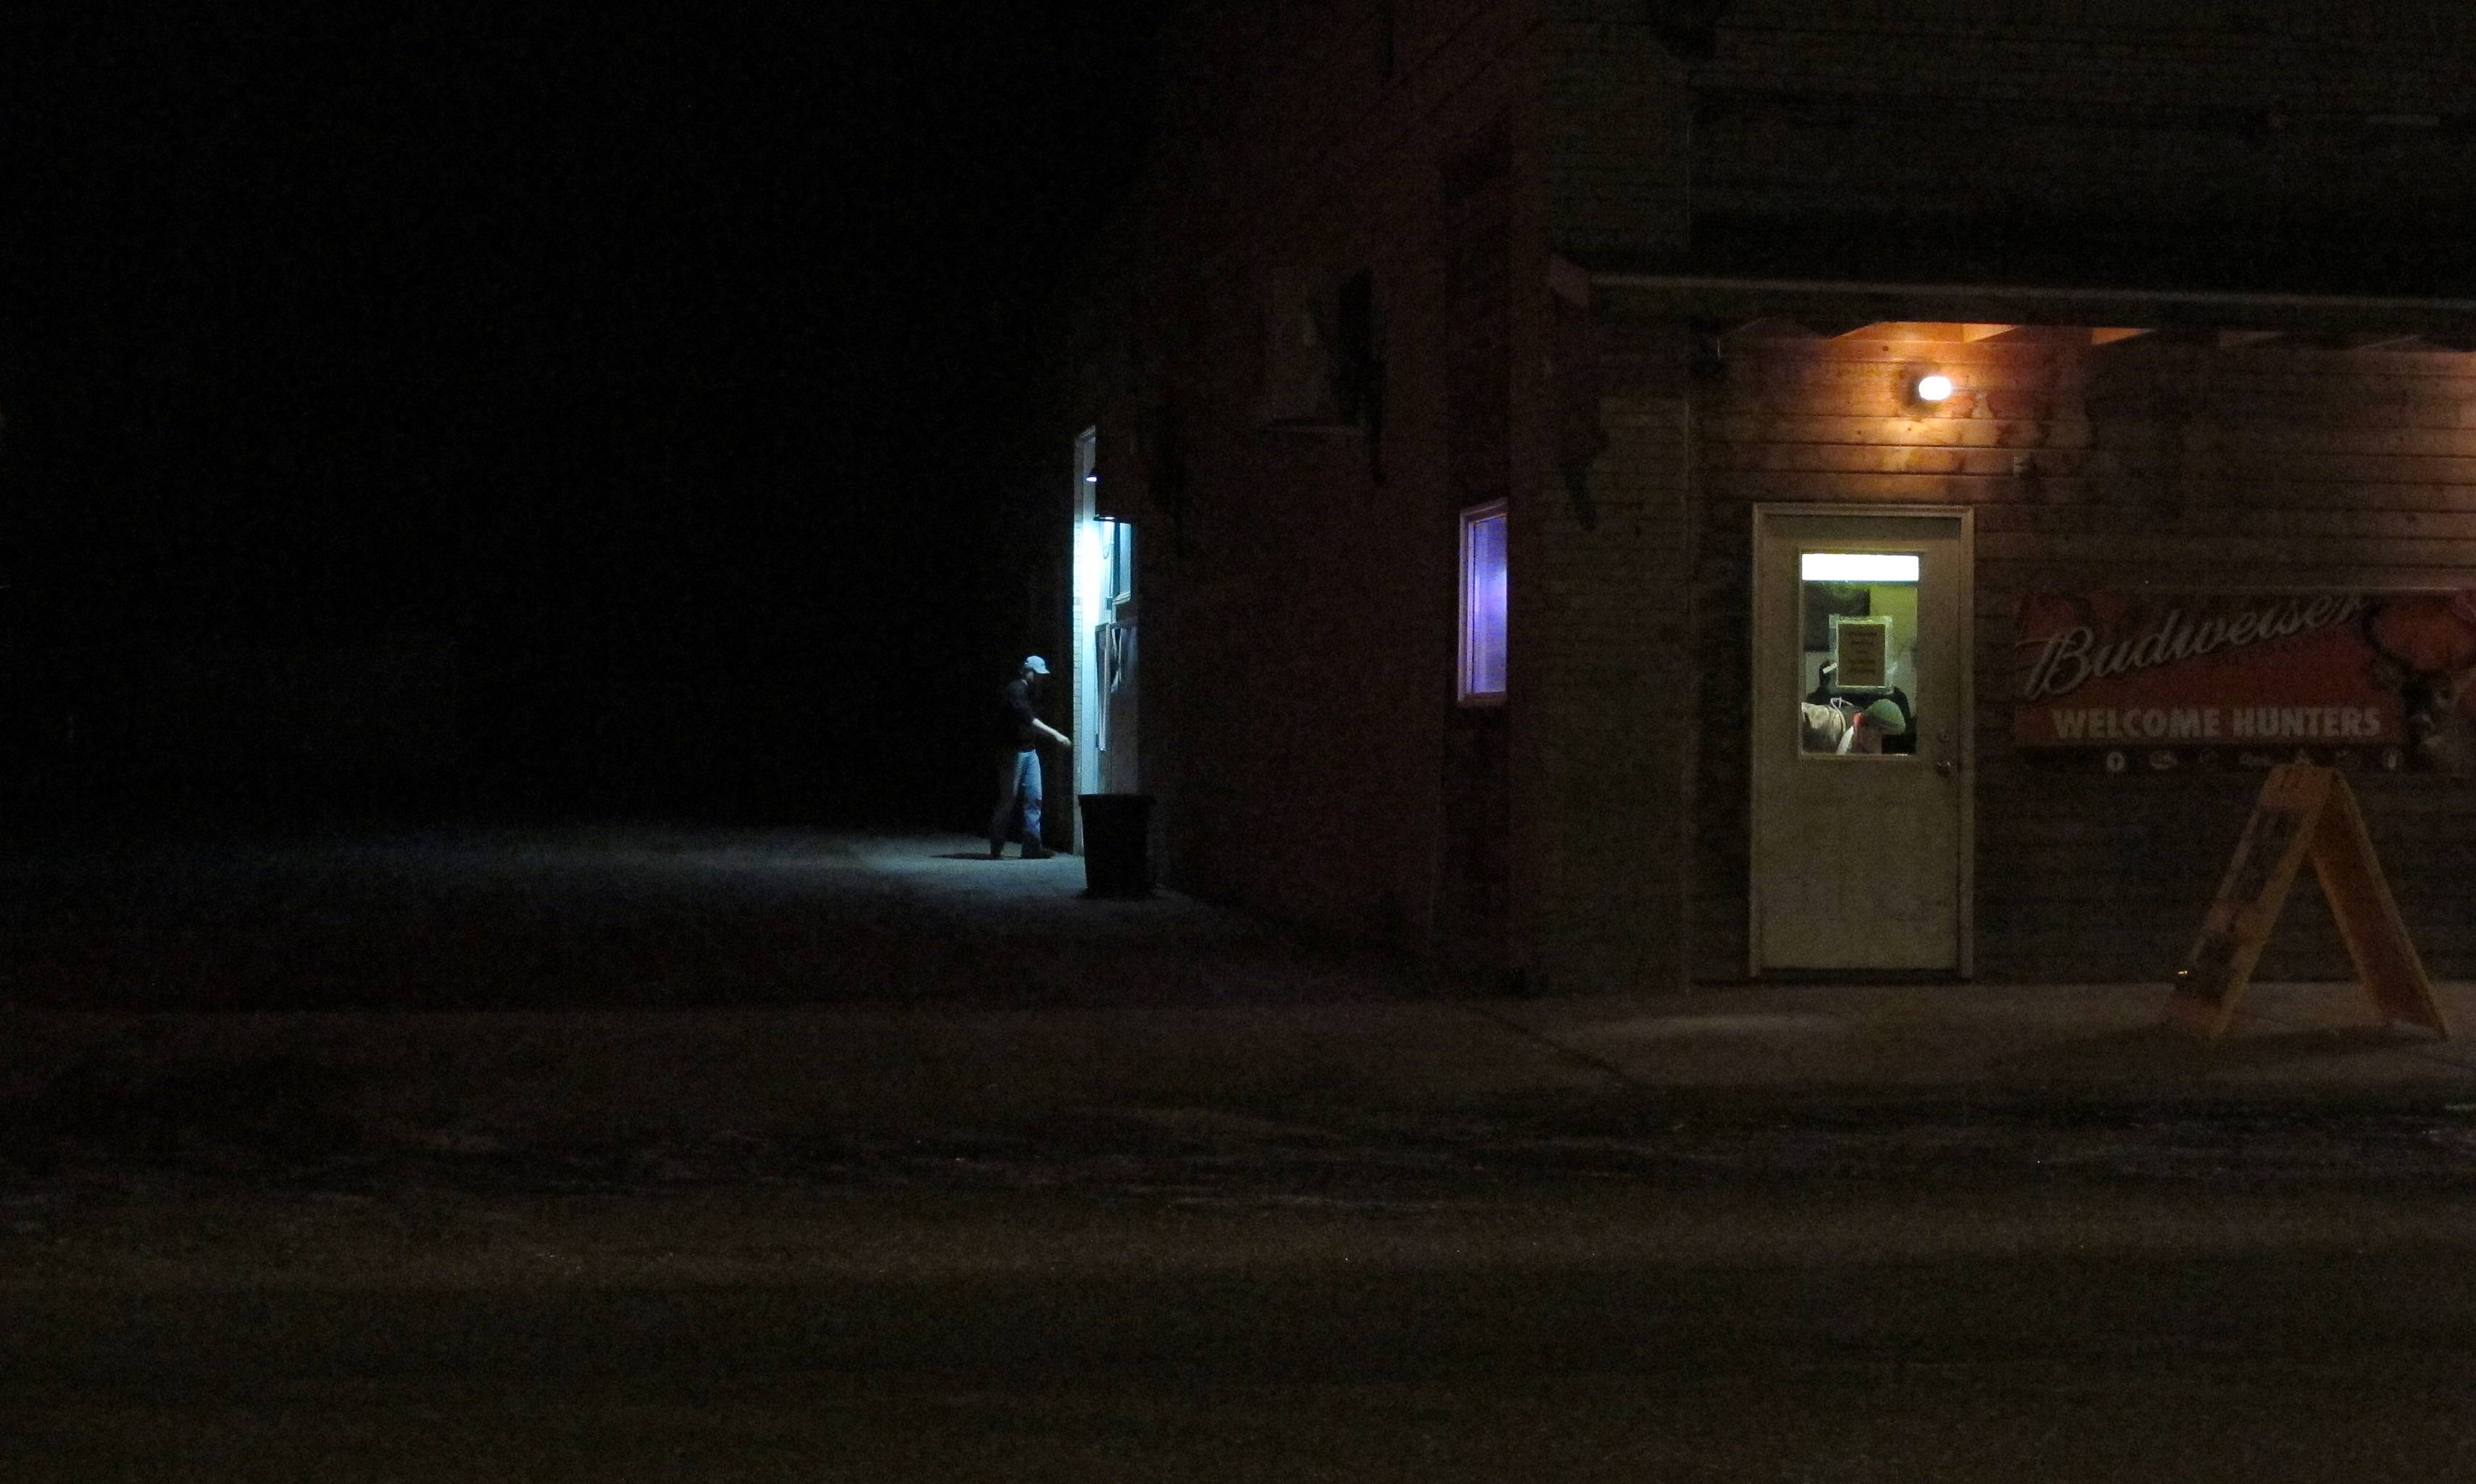 A patron walks into a bar in Alexander, N.D. The Baaken region, which includes northwest North Dakota, is known for its night life and drinking scene. Law enforcement officials say the region has had a growing crime problem, much of it related to drug and alcohol abuse. (AP Photo/Martha Irvine)